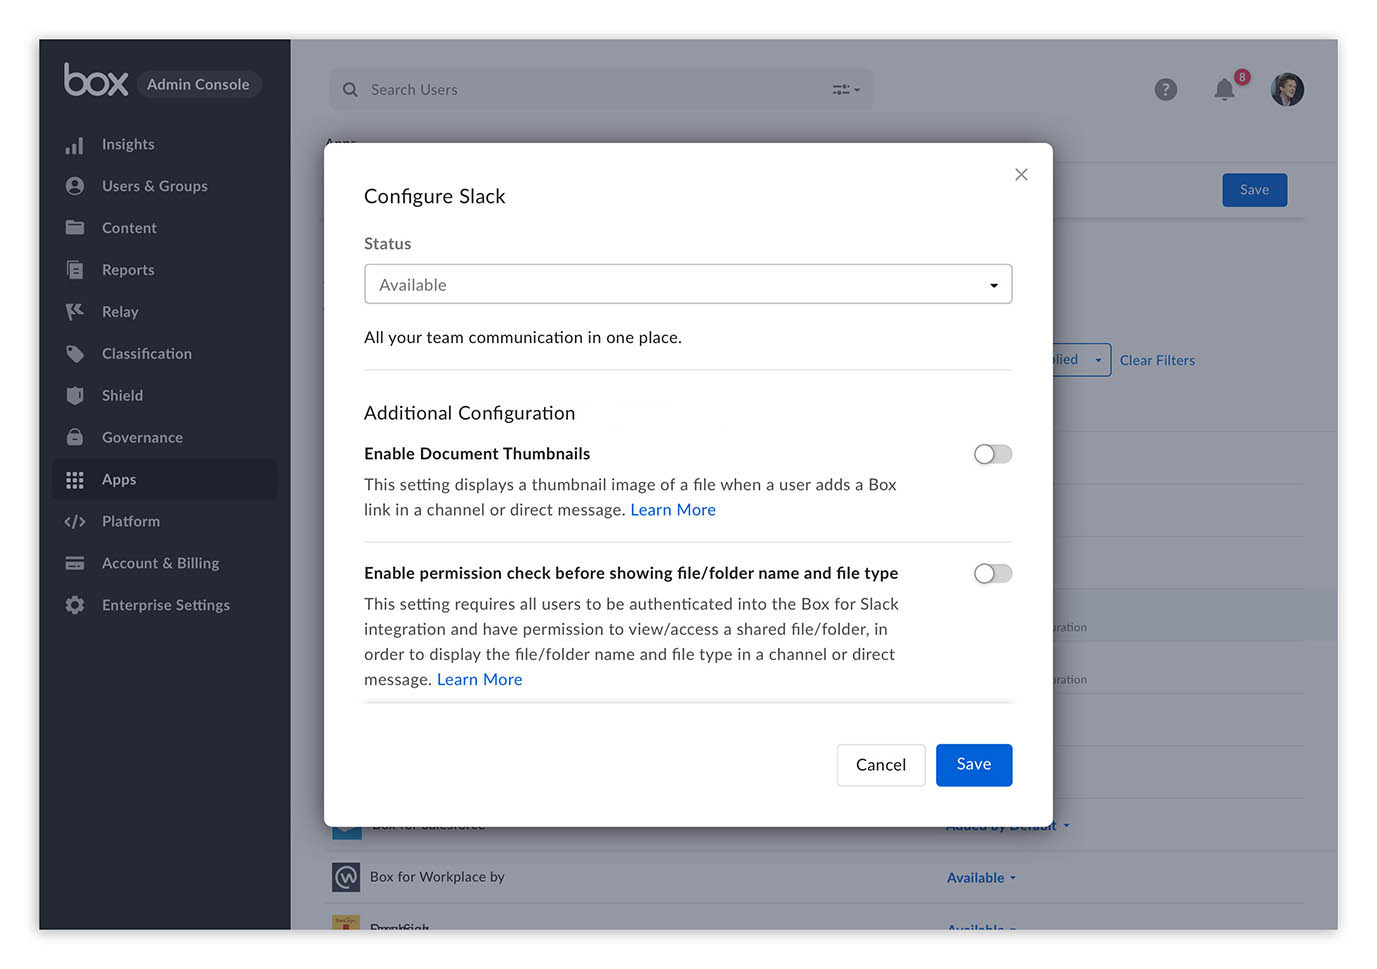 A screenshot showing admin controls in the new Box app for Slack.